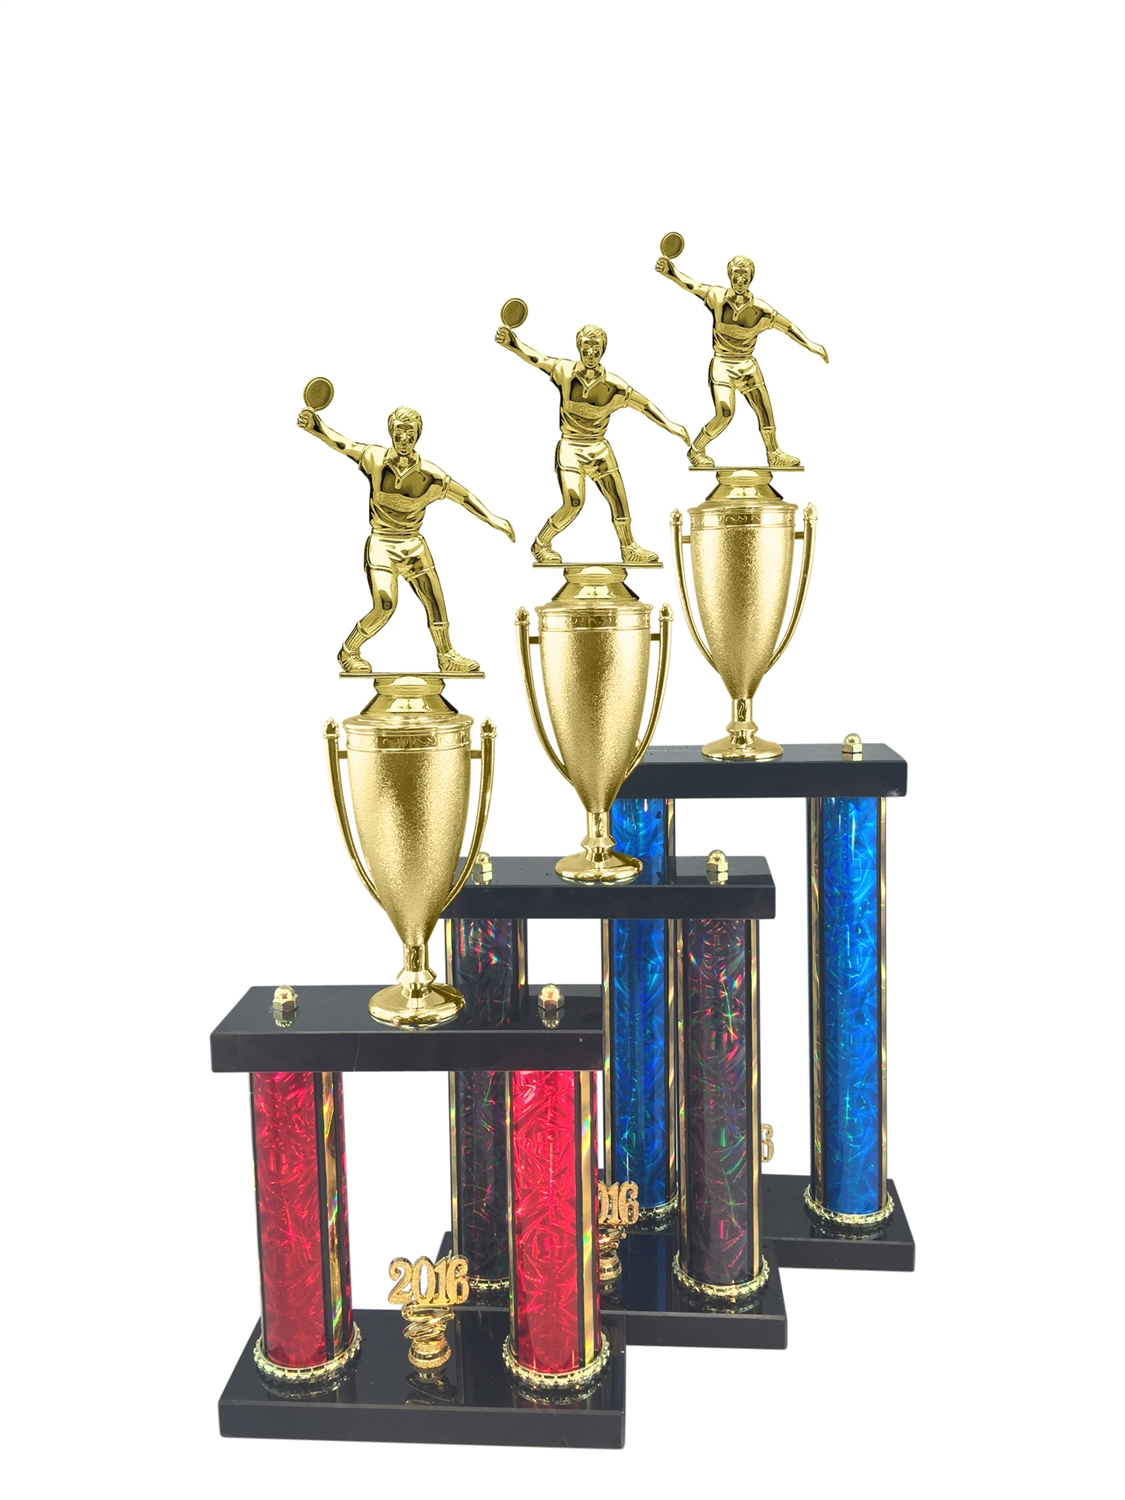 Male Ping Pong Trophy Available in 11 Color & 3 Size Options